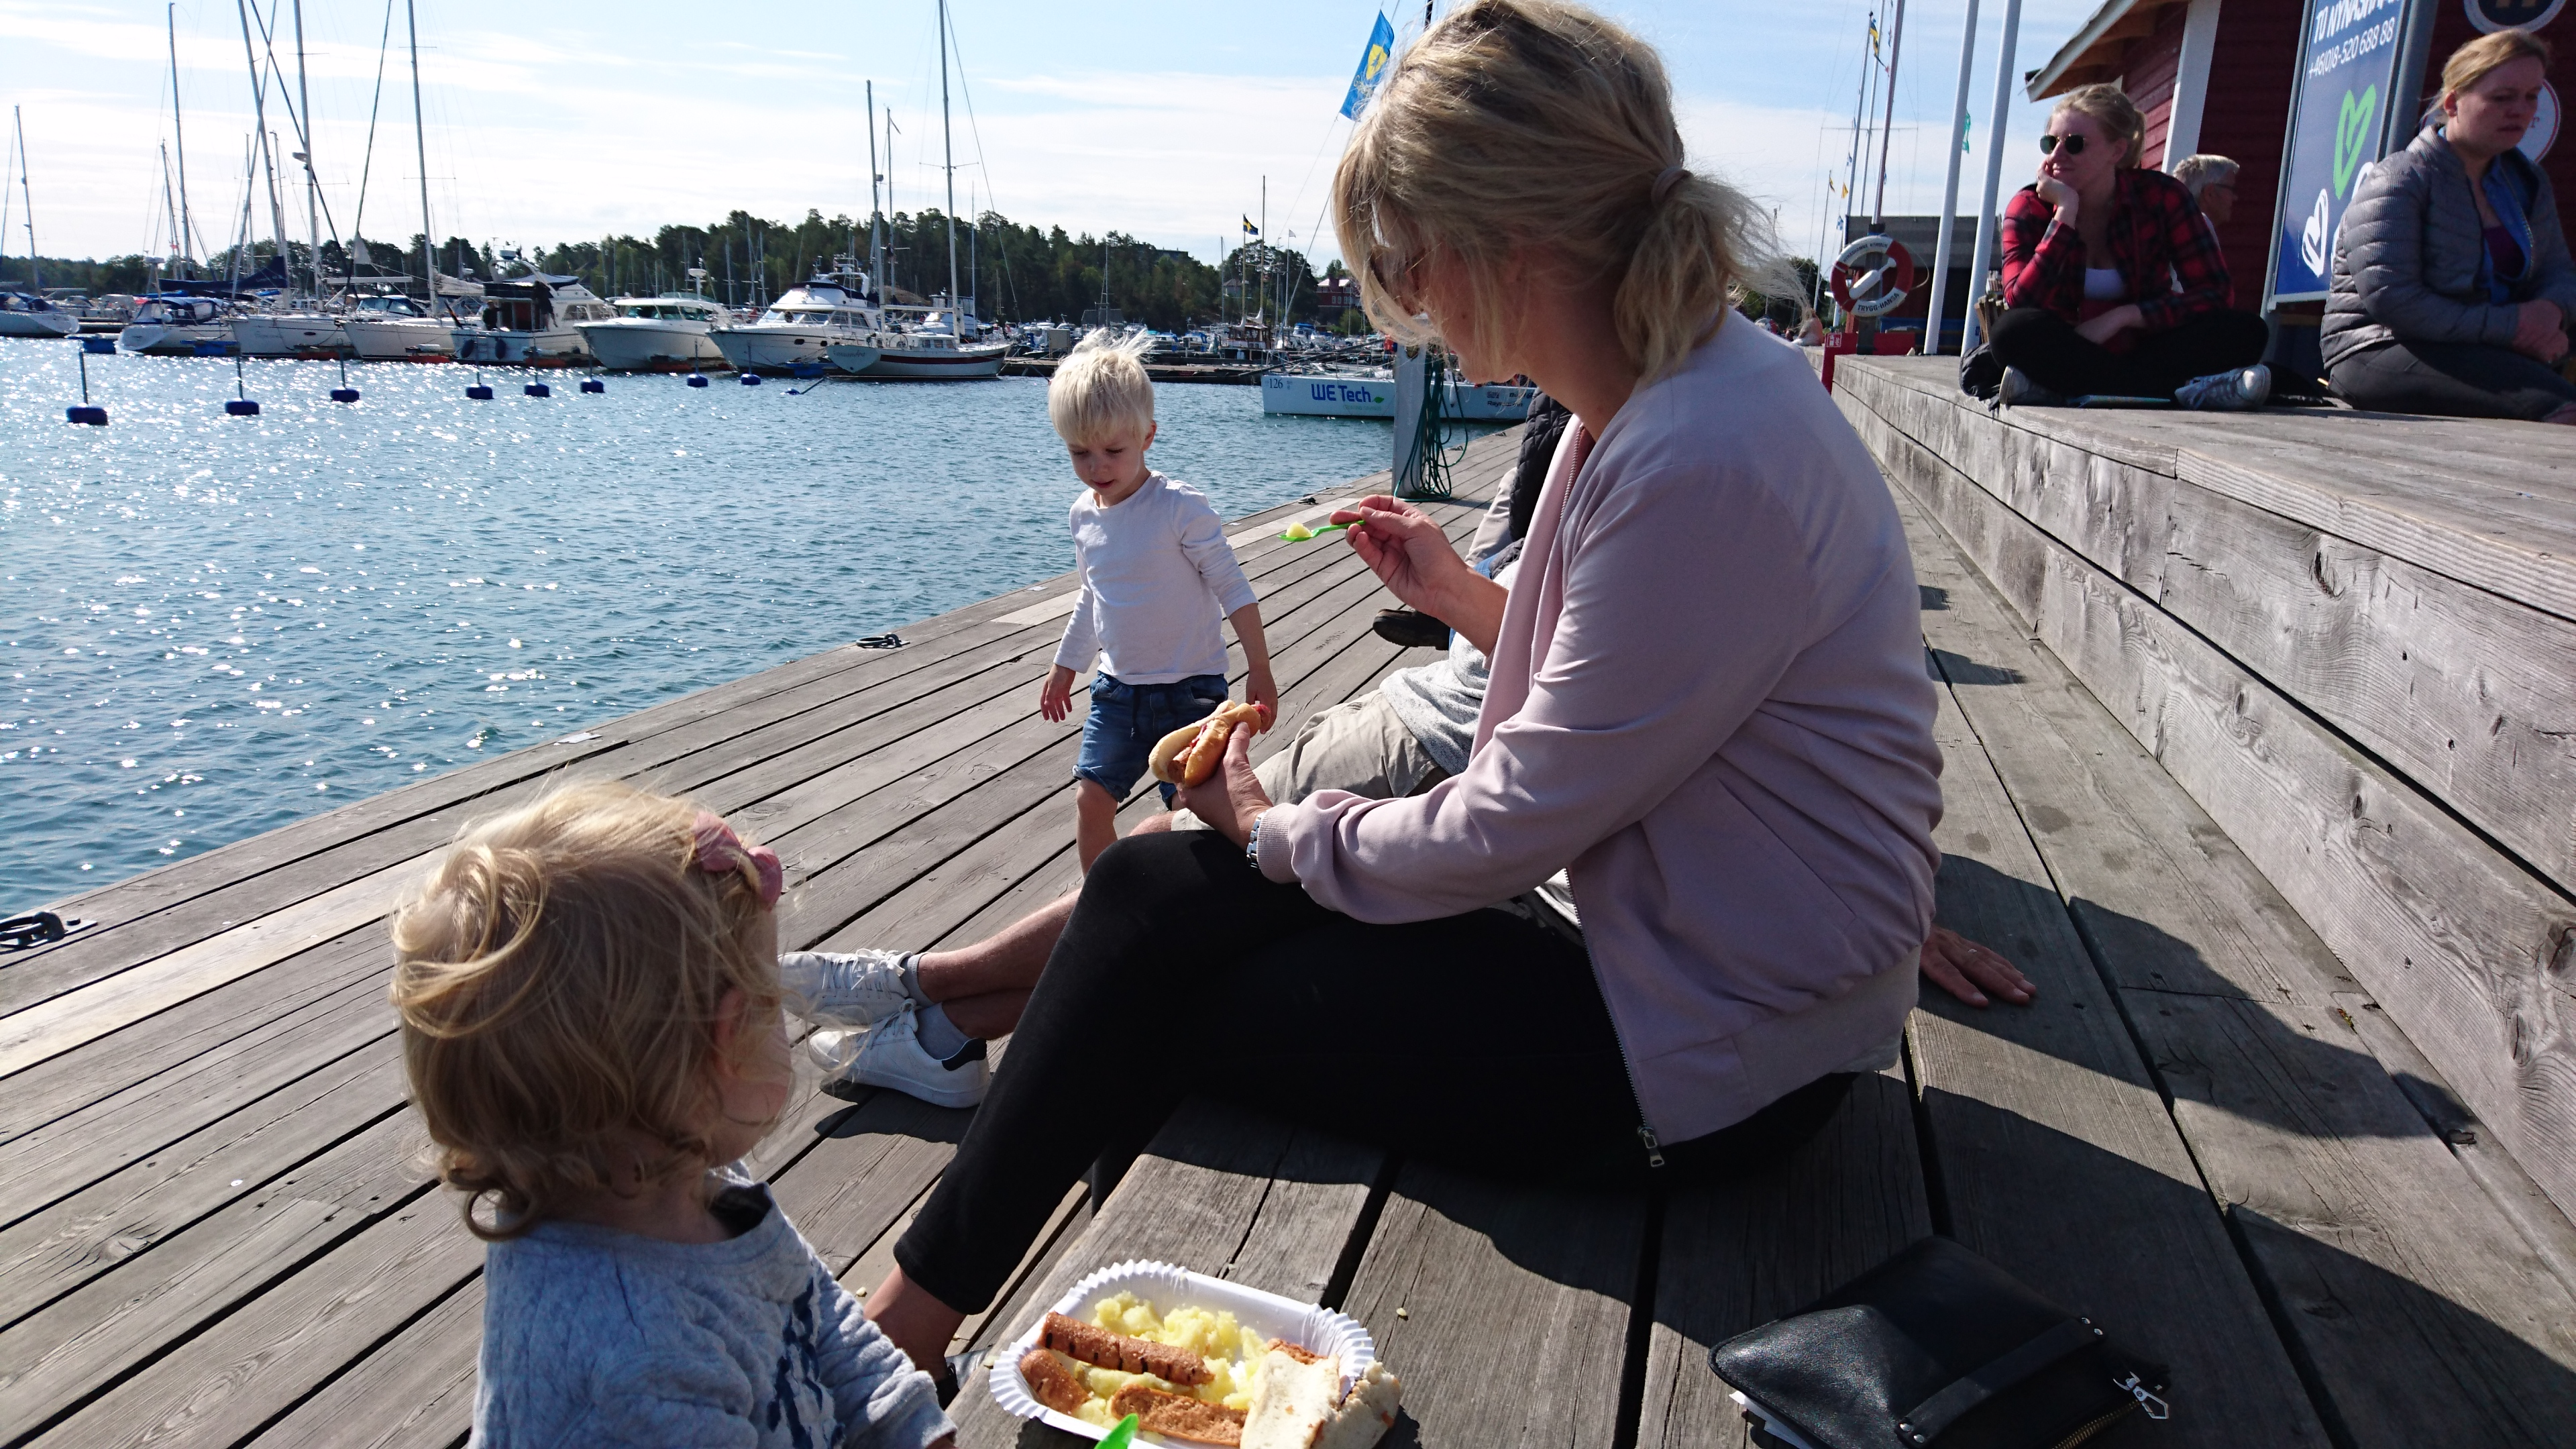 Picture from the habour of Nynäshamn